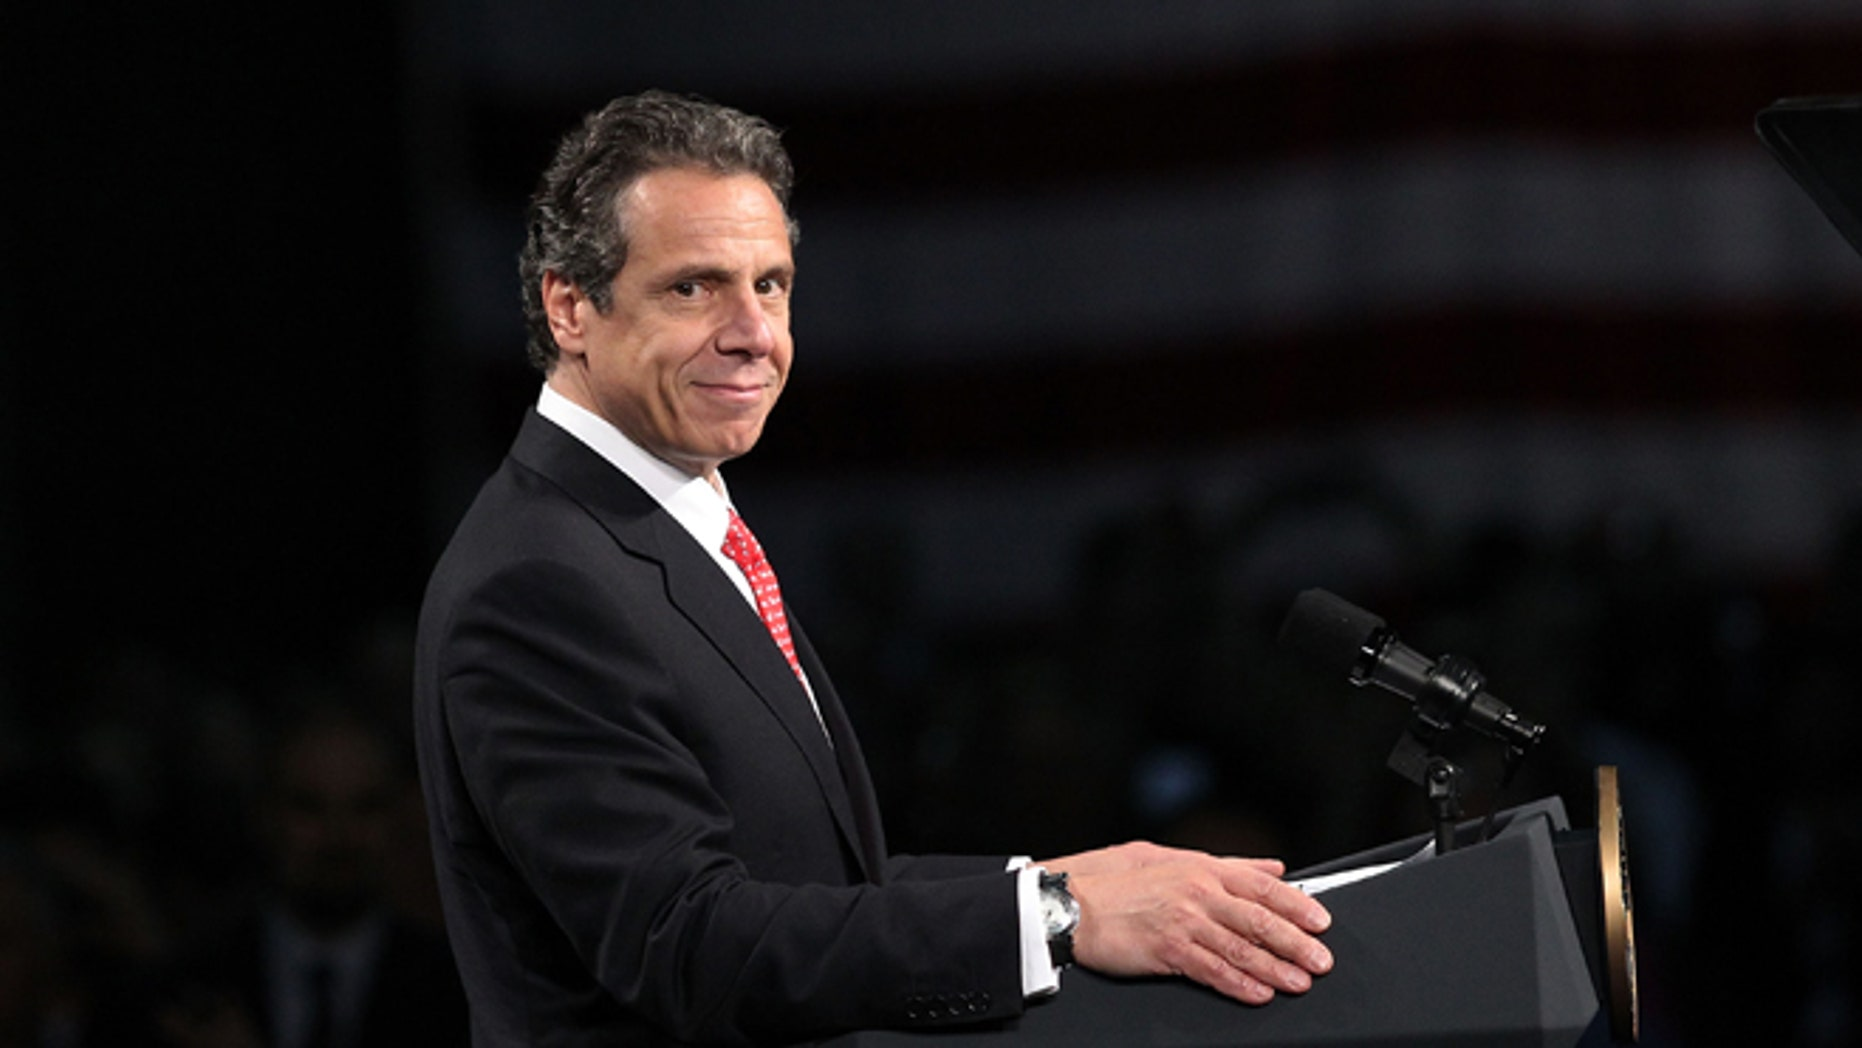 ALBANY, NY - MAY 08:  New York Gov. Andrew Cuomo speaks at the College of Nanoscale Science and Engineering at the University at Albany on May 8, 2012 in Albany, New York. Obama delivered an address that focused on the economy and job creation, two issues which look set to become the central themes of the race against presumptive Republican candidate Mitt Romney. According to a recent Marist College pole, Obama holds a 22-point lead over rival Romney in New York state.  (Photo by Spencer Platt/Getty Images)